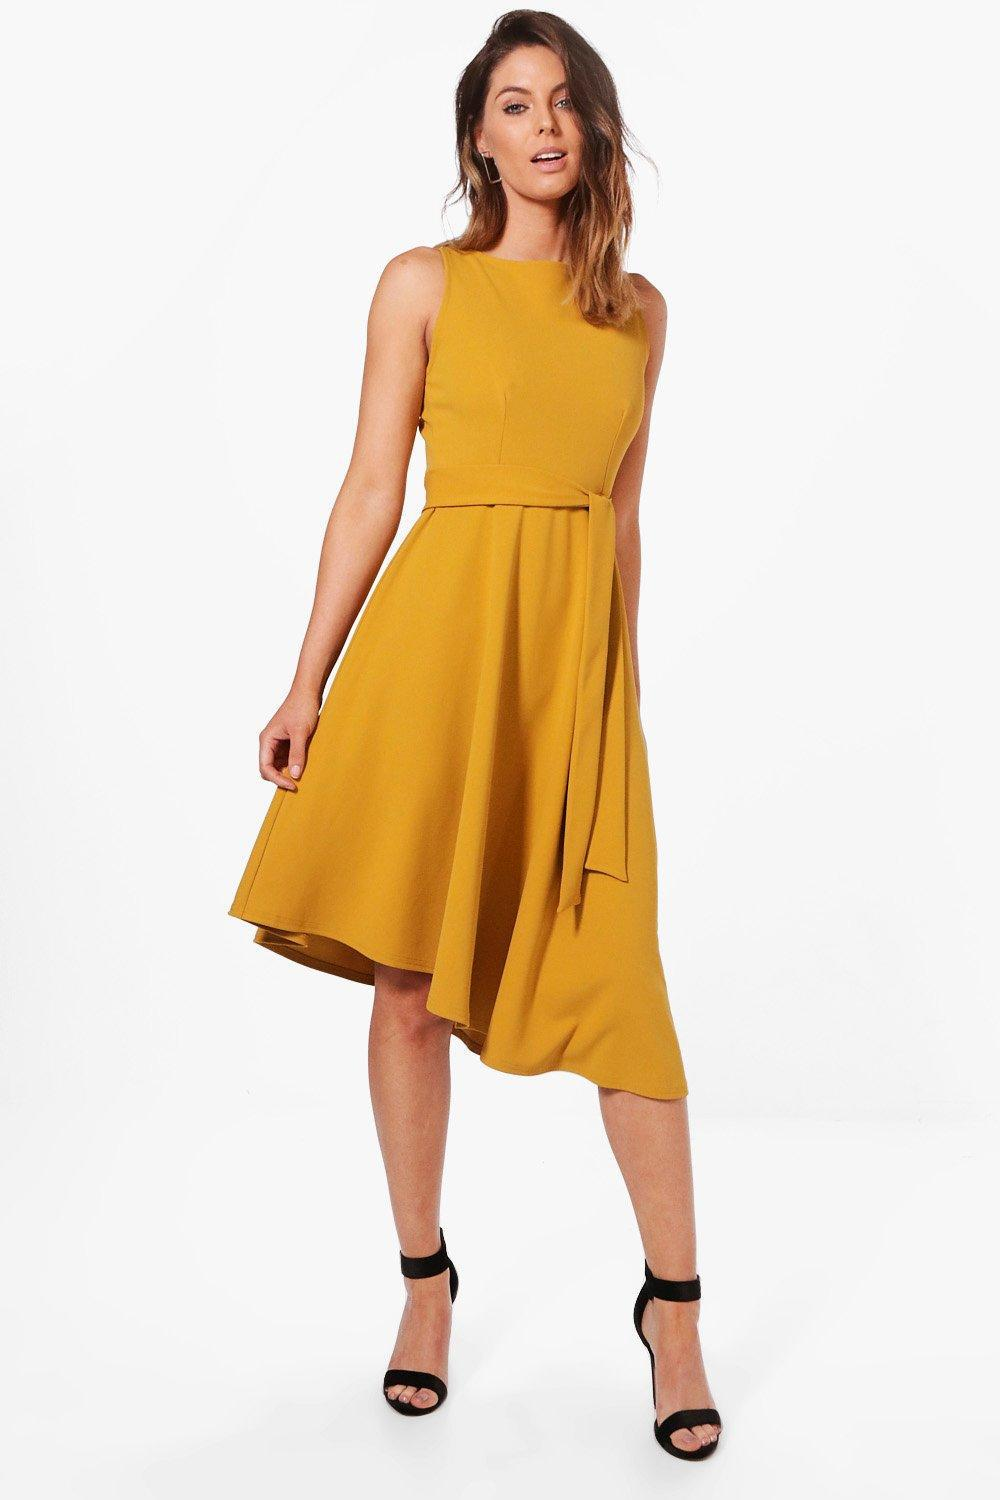 c2977c5a86 Lyst - Boohoo Poppy Asymetric Formail Midi Skater Dress in Yellow